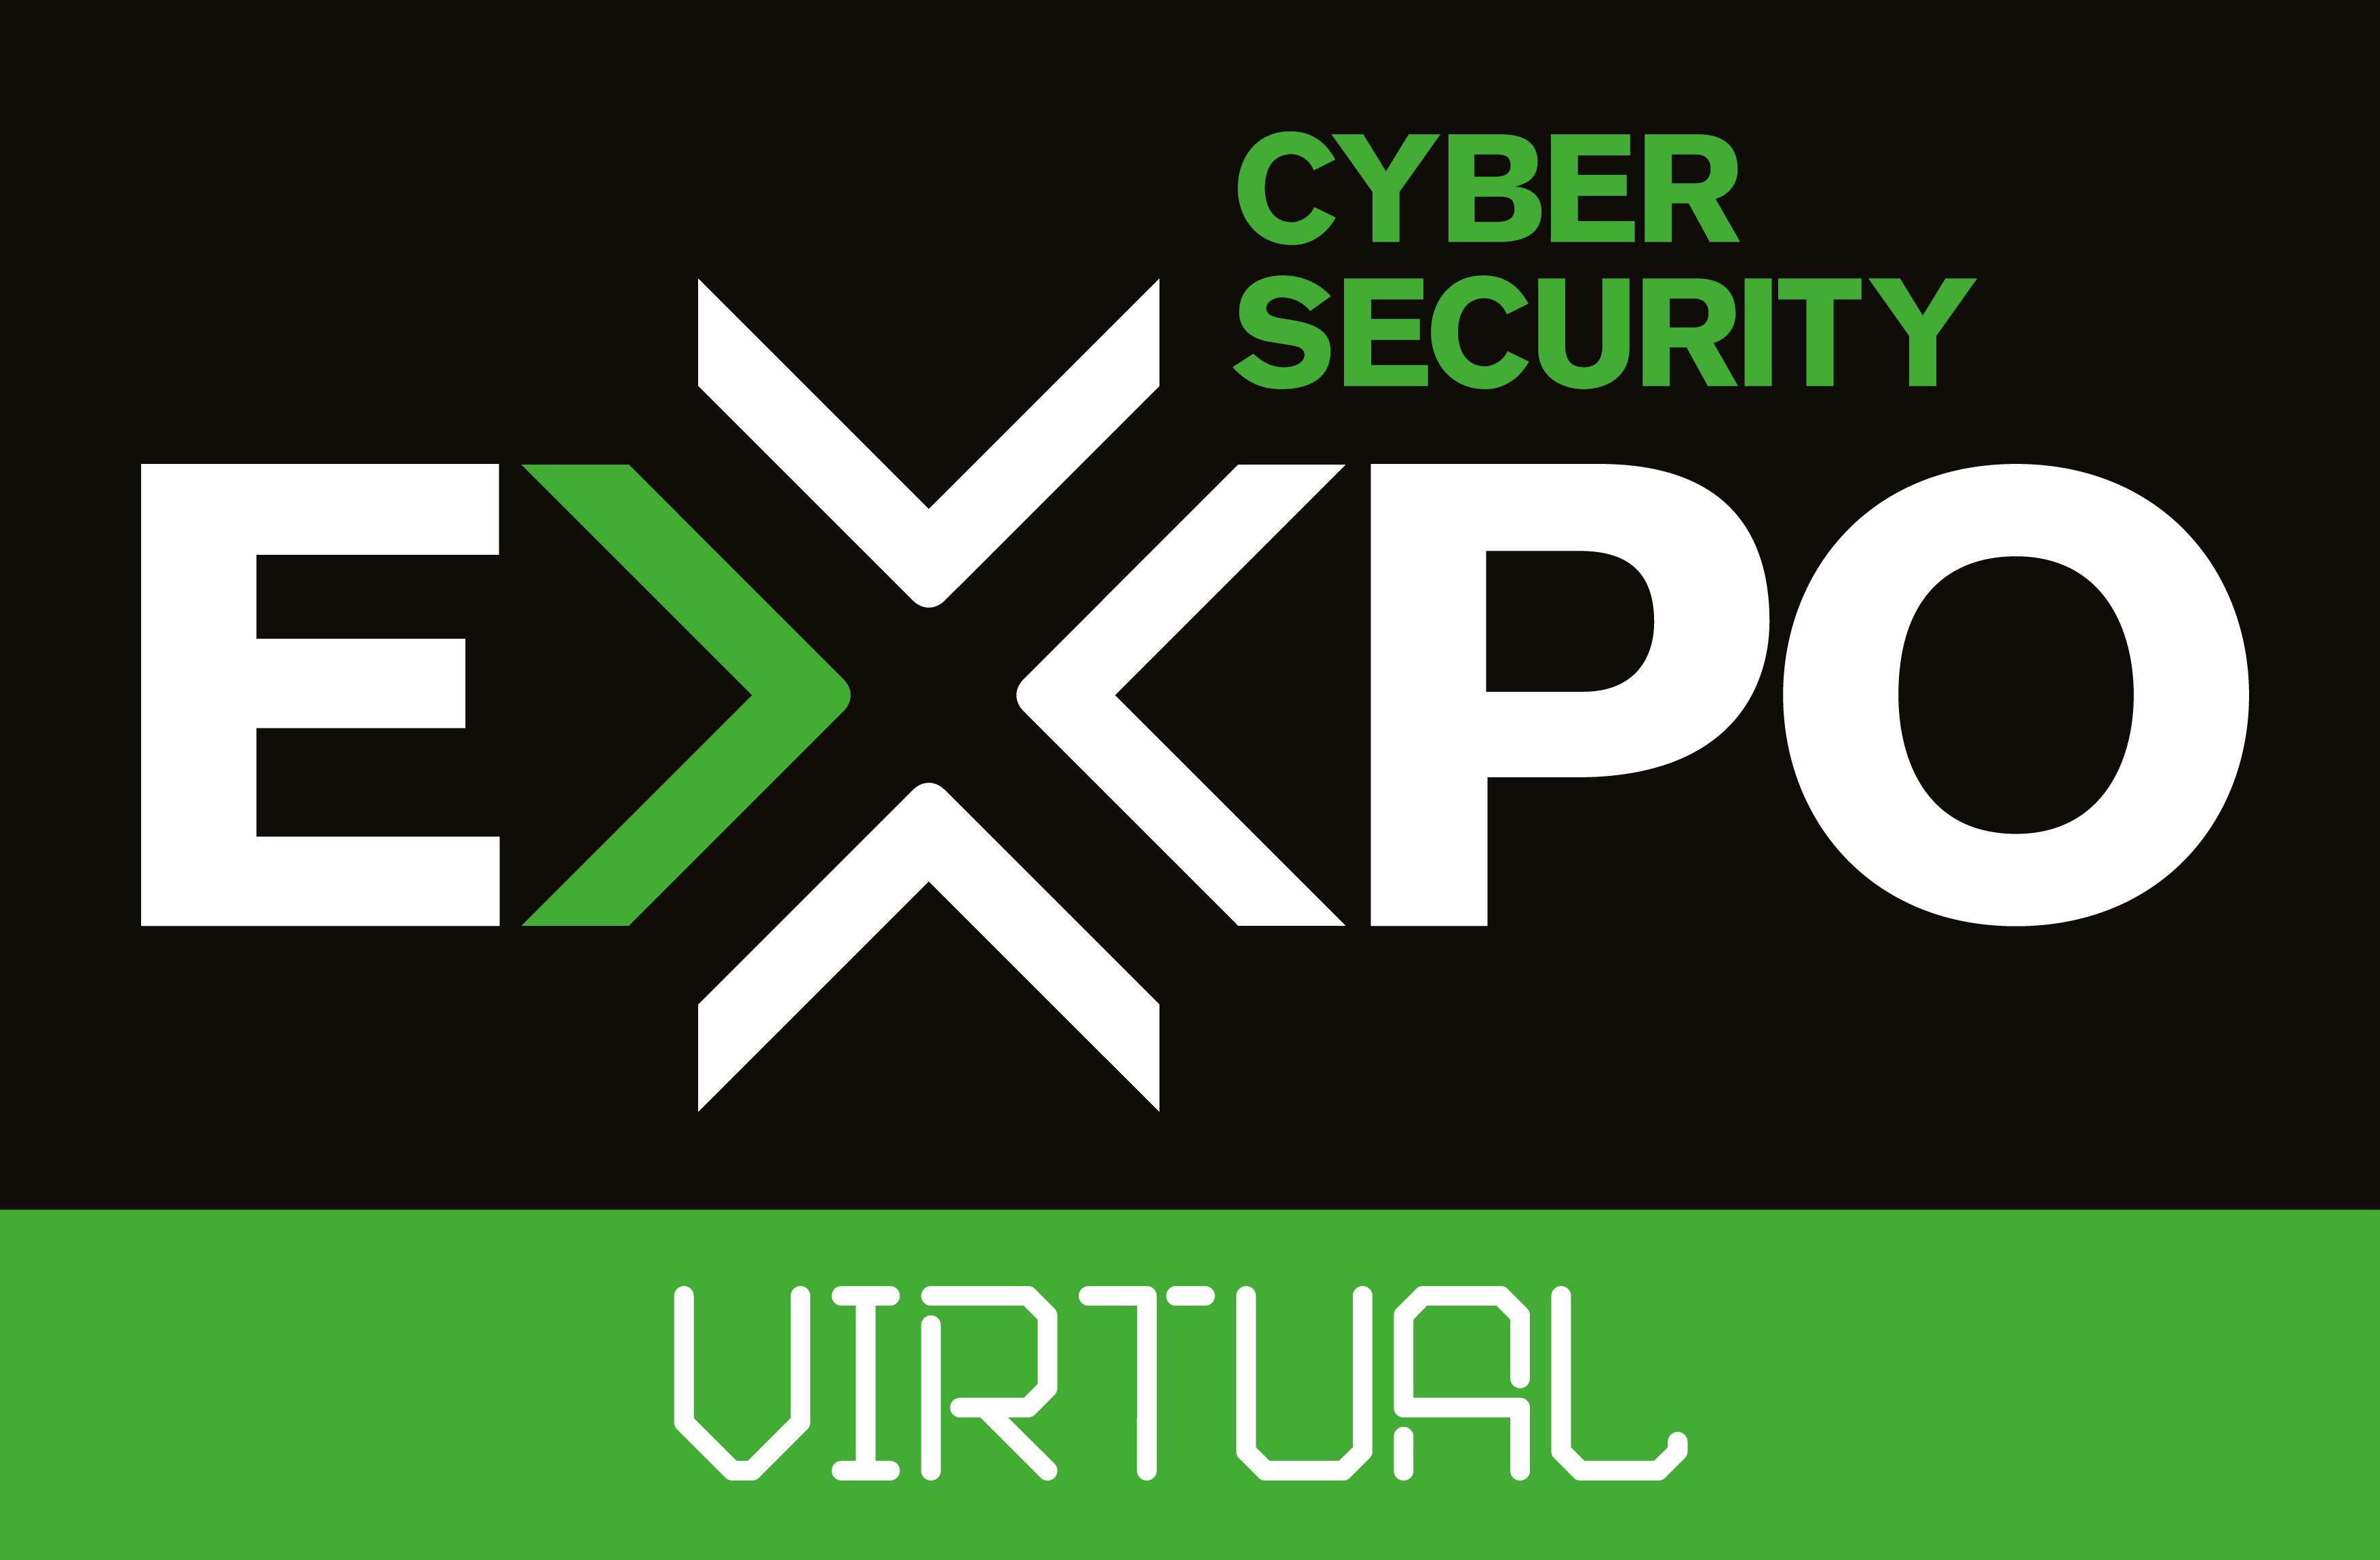 Cyber Security Expo 2021